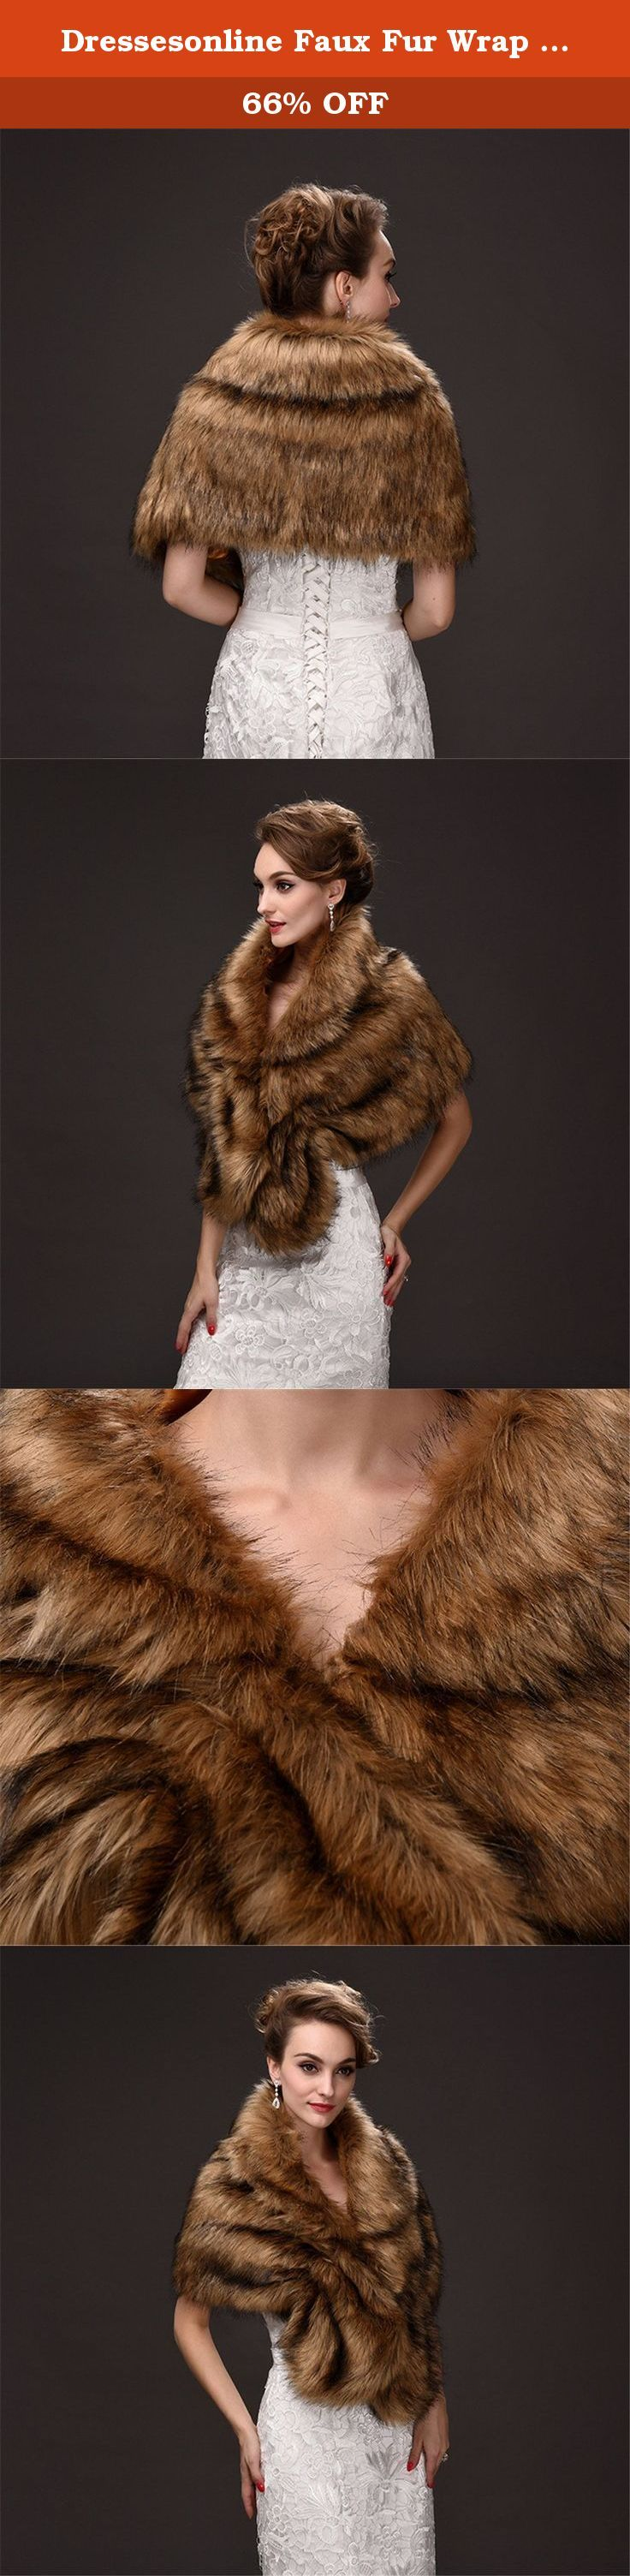 Dressesonline Faux Fur Wrap Shawl For Wedding Dress or Any Party Dress Winter MPJ001WT-M. Welcome to Dressesonline shop for wedding dress and any other special occasion dresses. The luxury faux fur wrap is appropriate for Wedding. Wearing this luxury faux fur wrap is always a advisable choice! Note: 1. The real color of the item may be slightly different from the pictures shown on website caused by many factors such as brightness of your monitor and light brightness. 2. For accurate...